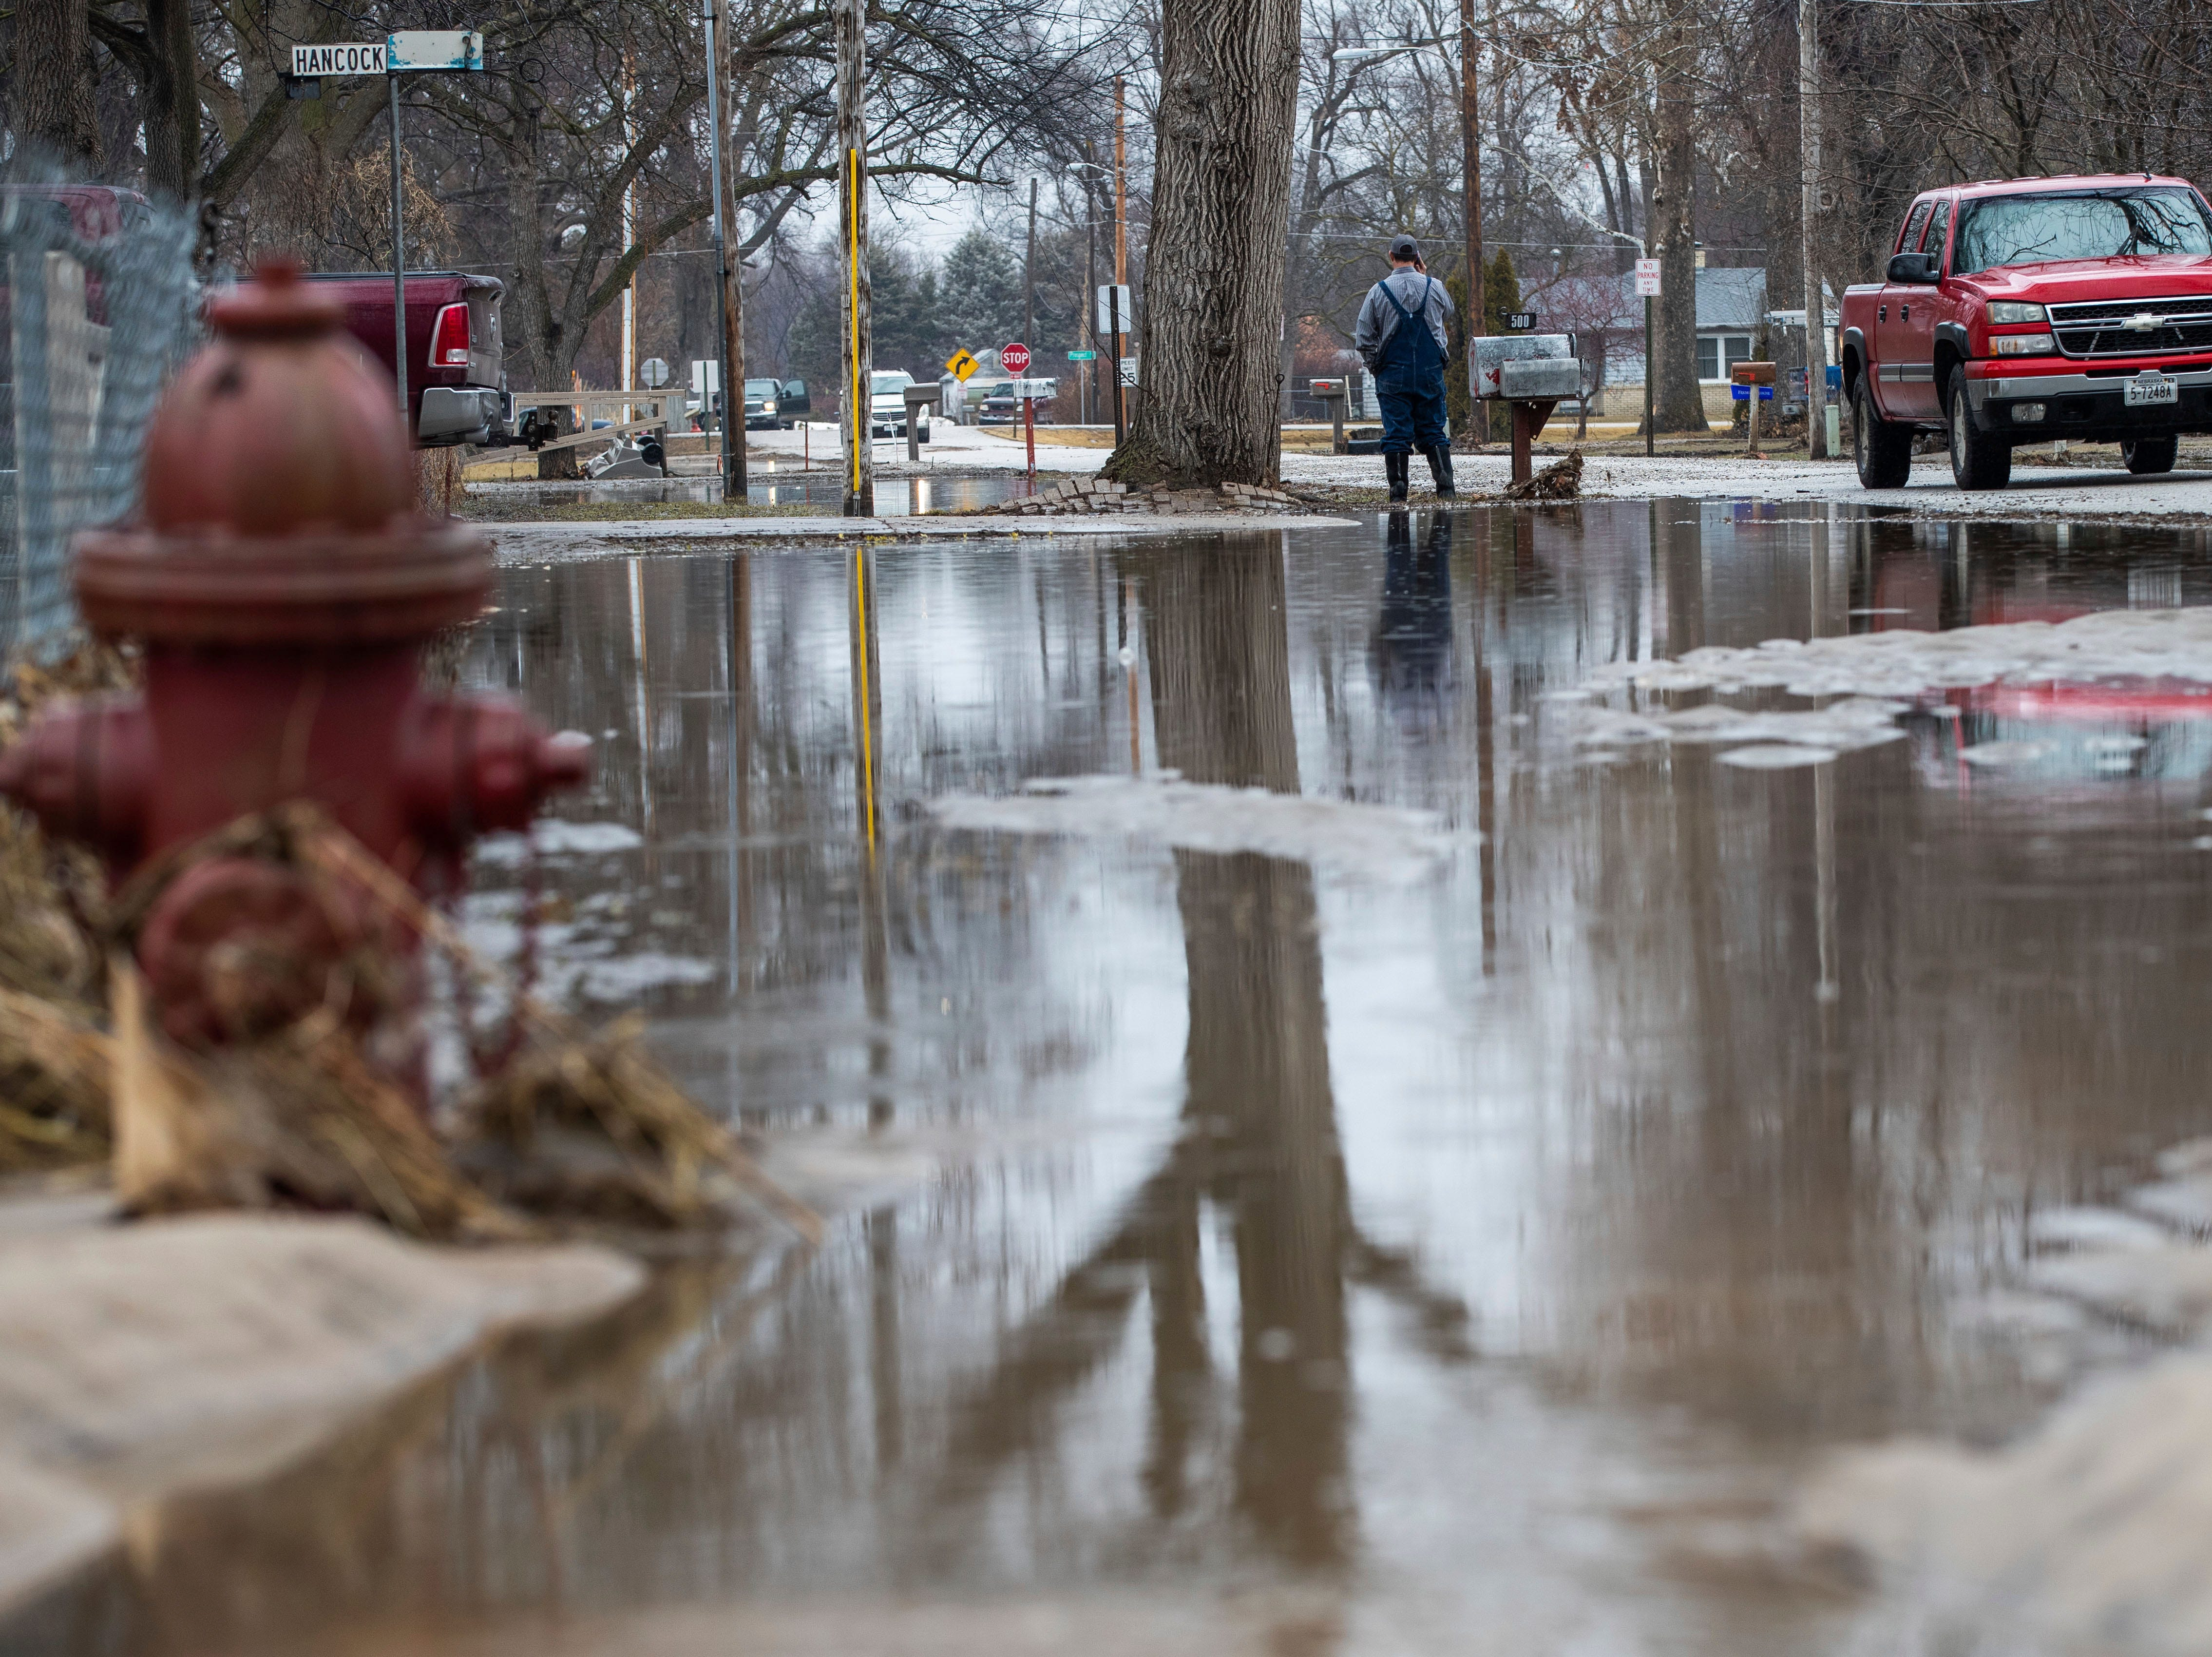 A motorist travels down Boulevard Street near a closed Ridgeland Road Tuesday, March 19, 2019, in Inglewood, Neb. Flooding is expected throughout the week in several states as high water levels flow down the Missouri River. Swollen rivers have already breached more than a dozen levees in Nebraska, Iowa and Missouri, according to the U.S. Army Corps of Engineers.